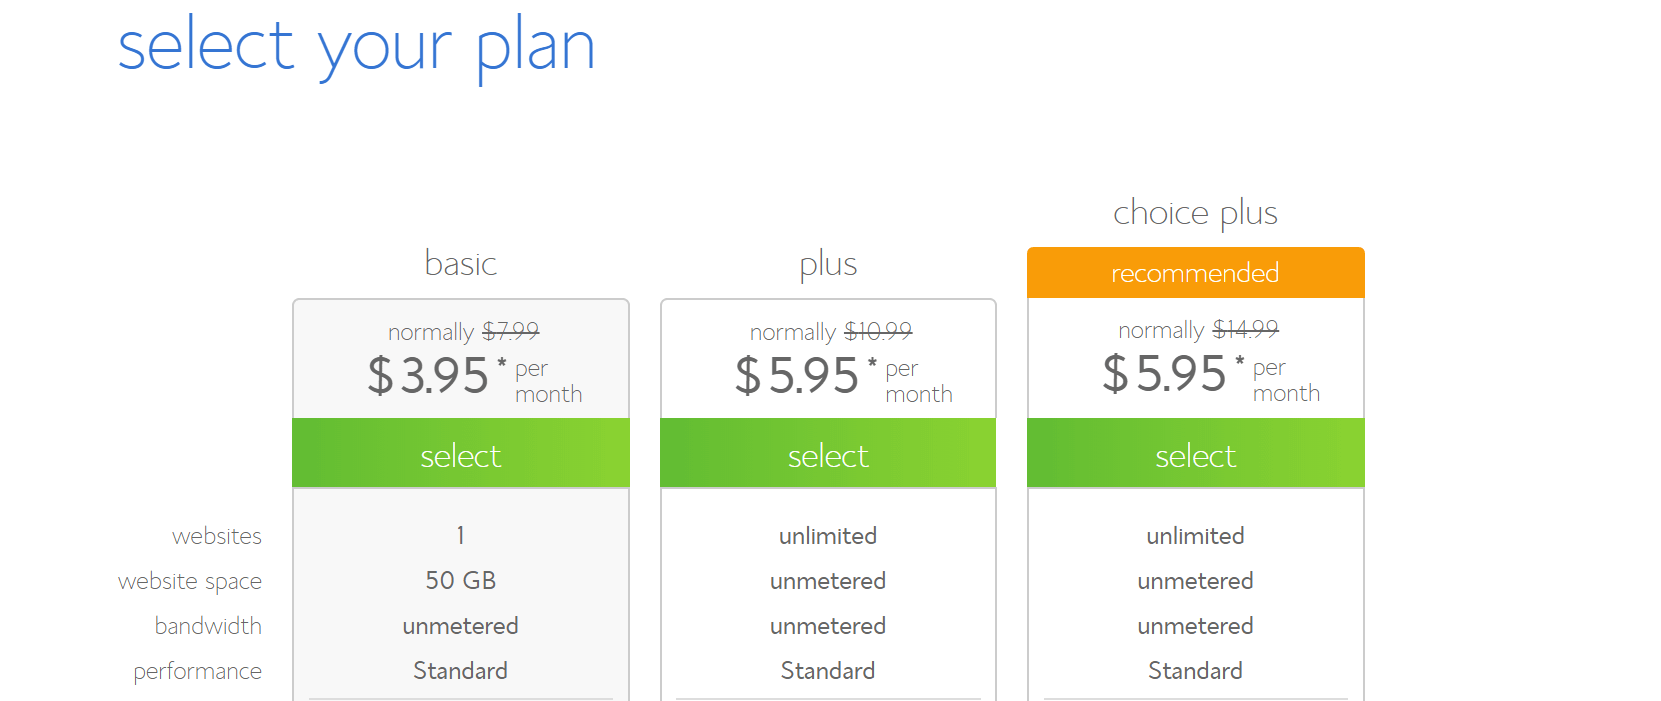 Bluehost shared pricing options.